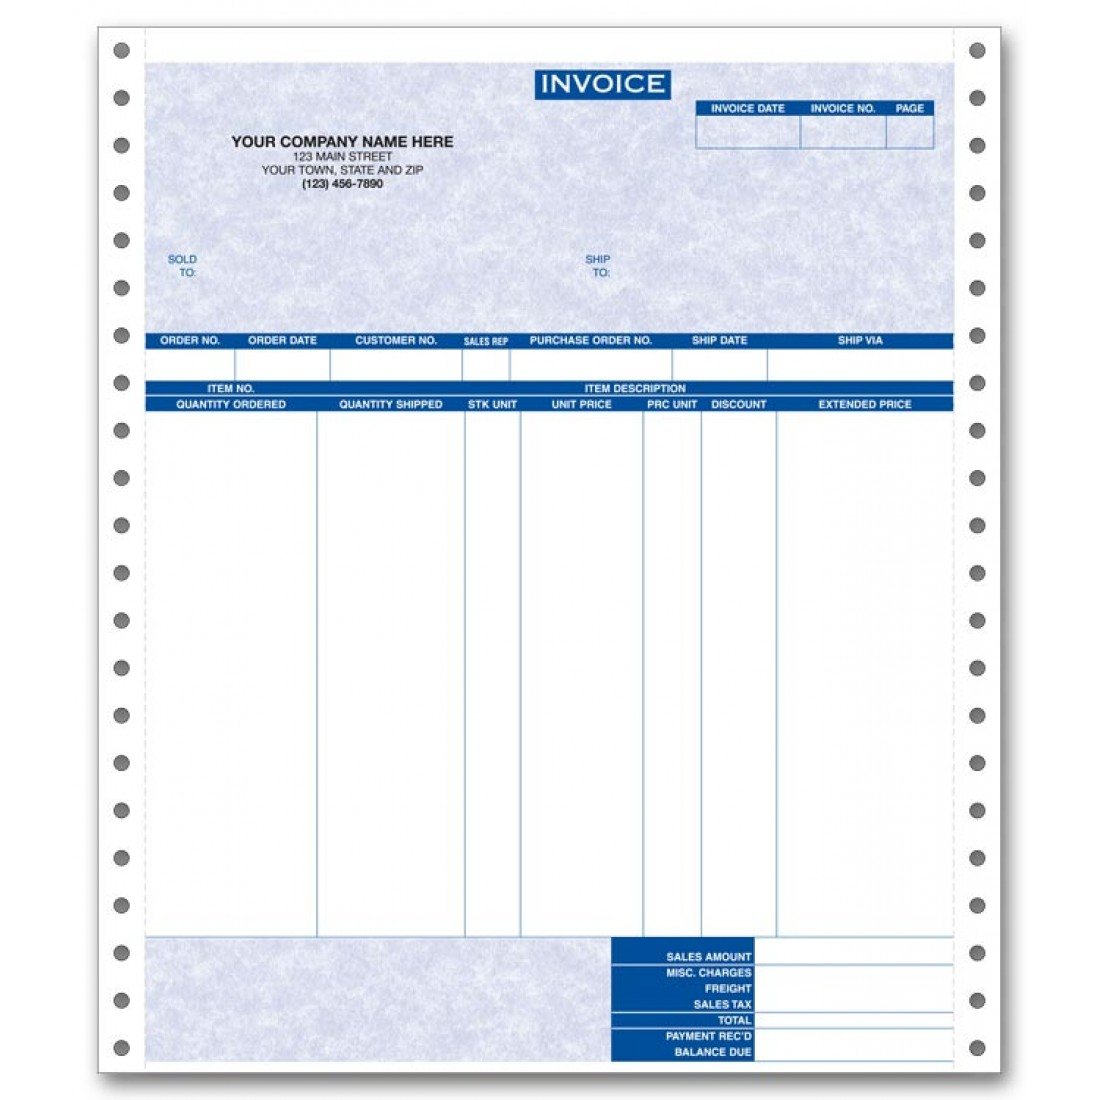 General Continuous Invoice for RealWorld - Parchment